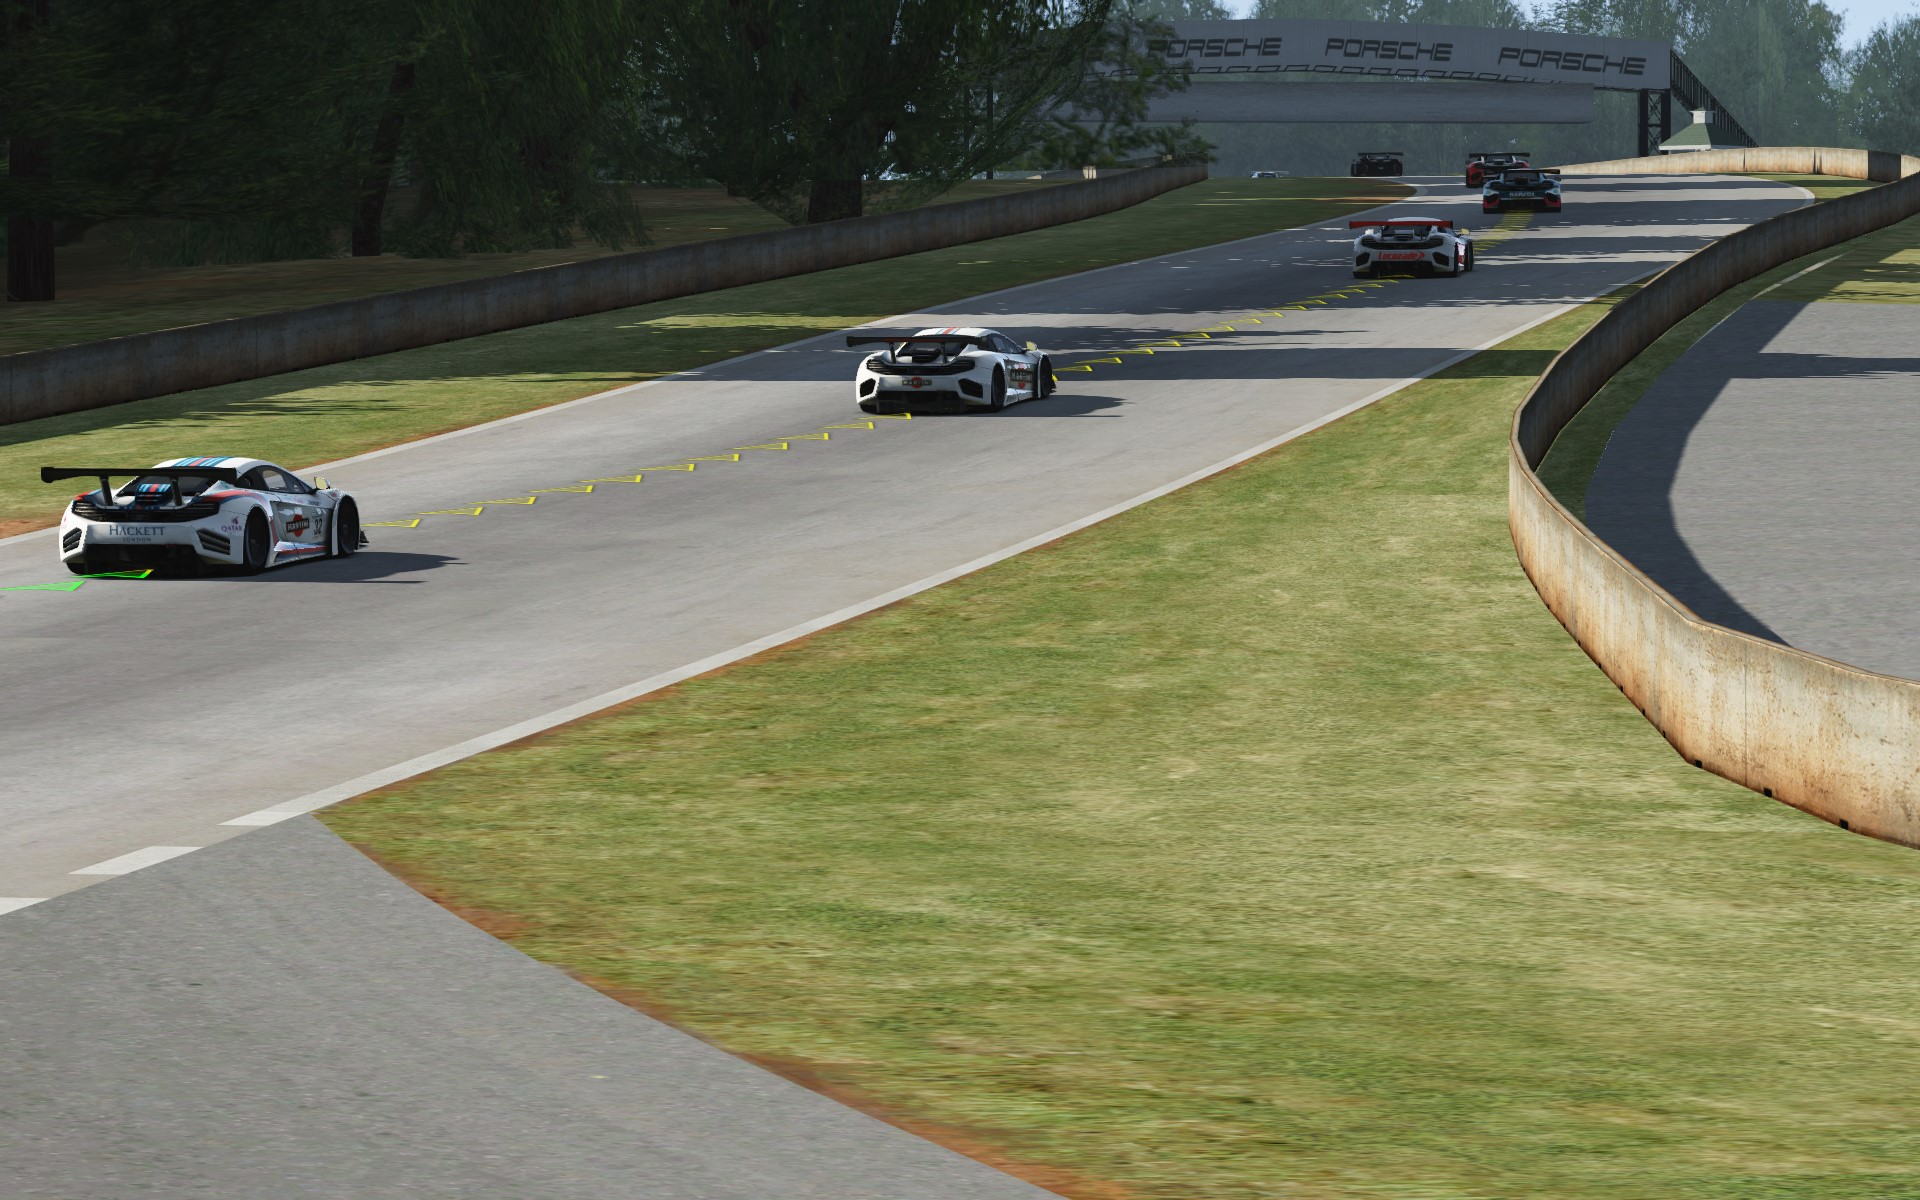 Screenshot_mclaren_mp412c_gt3_road atlanta_10-8-115-14-0-49.jpg